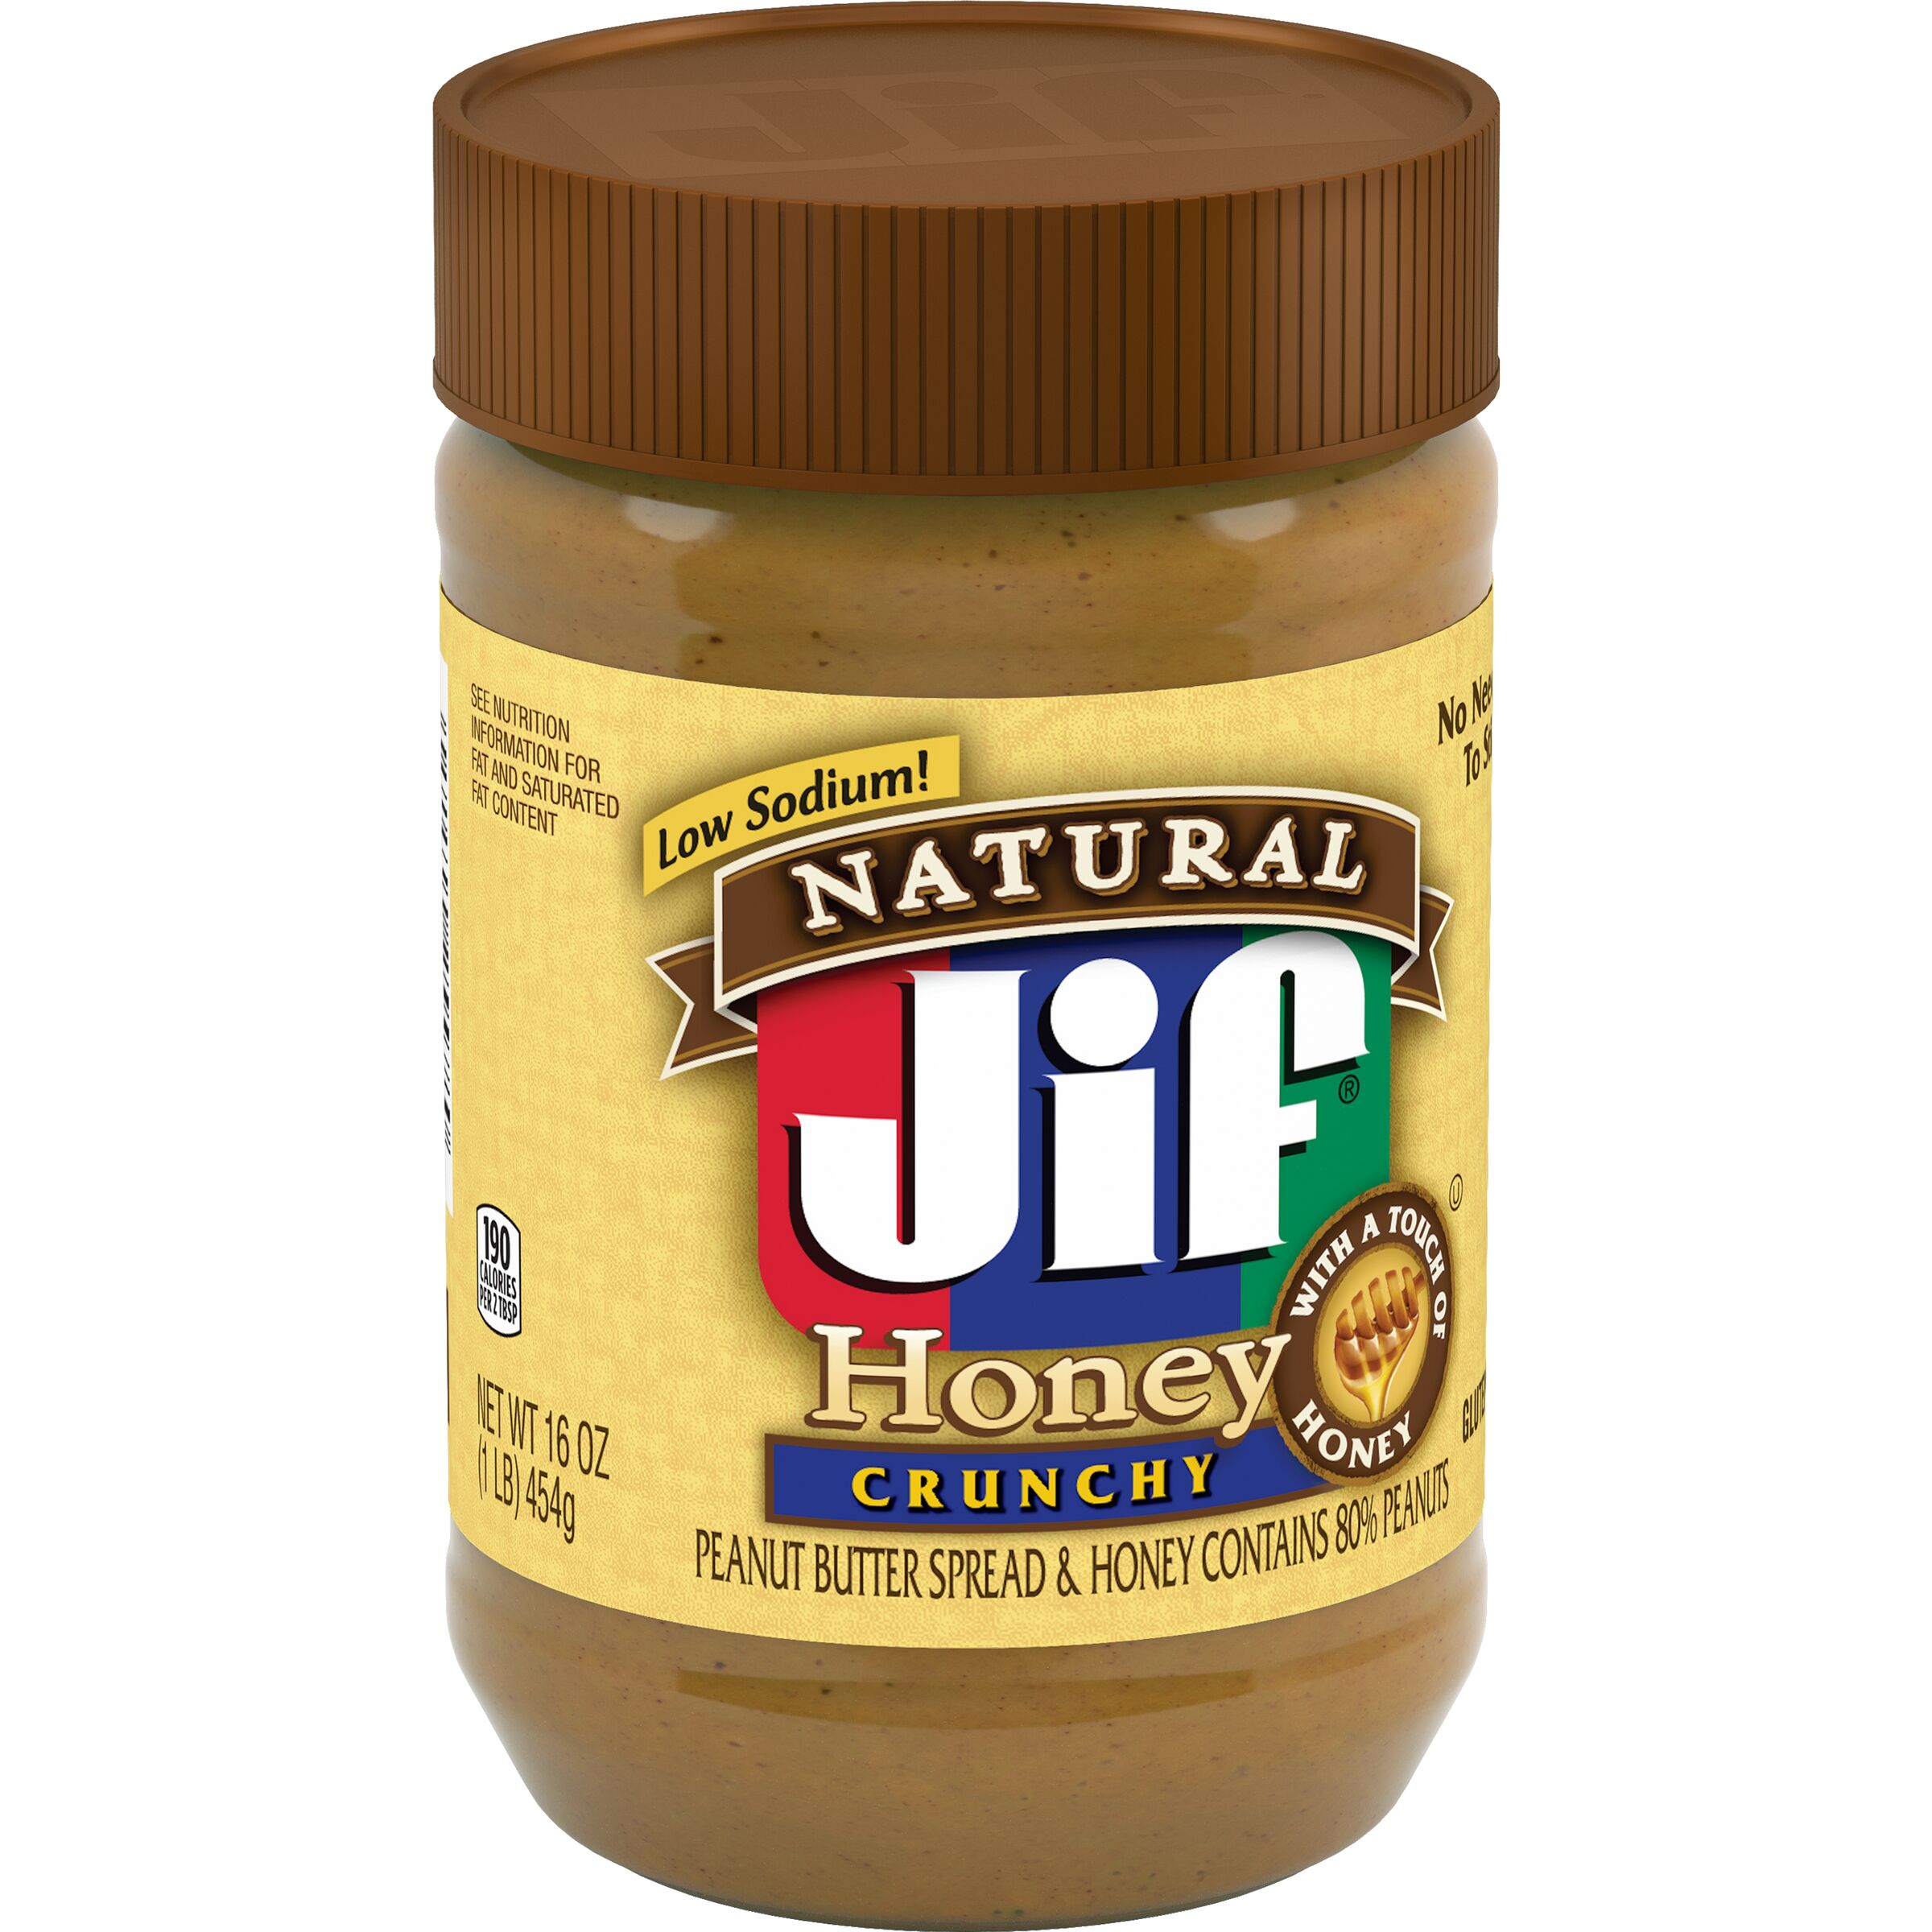 Jif<sup>&reg;</sup> Natural Crunchy Peanut Butter Spread & Honey Contains 80% Peanuts